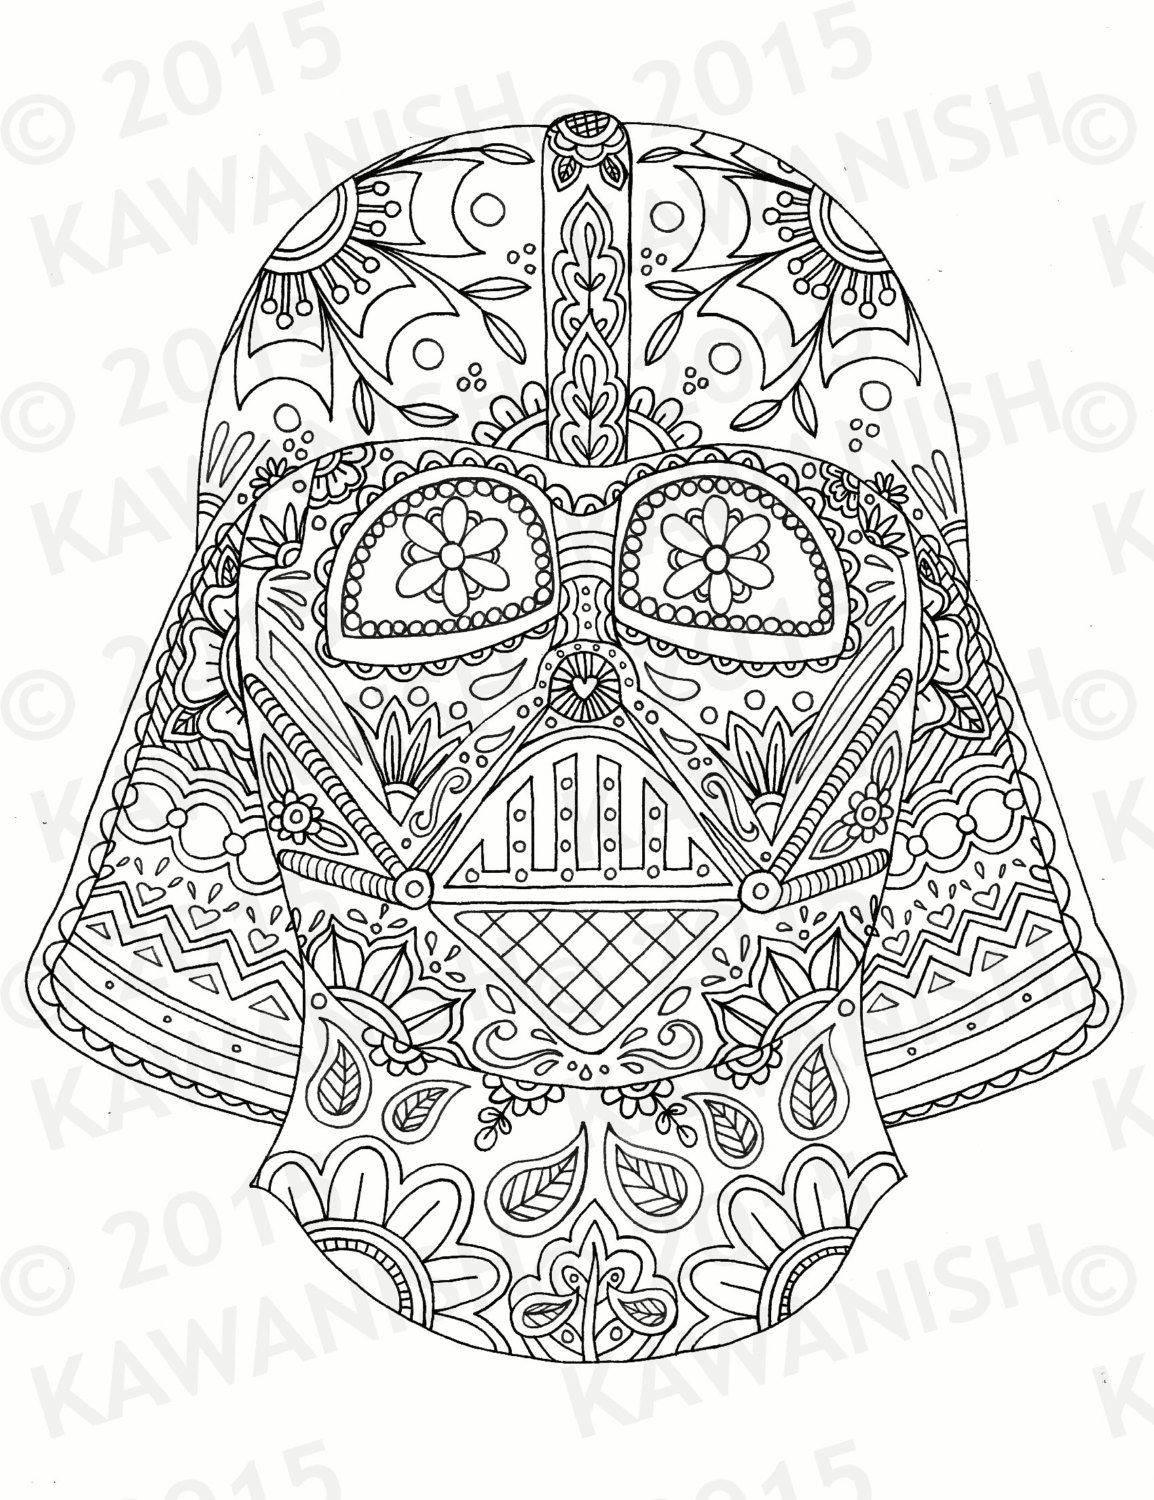 Darth Vader Mask Adult Coloring Page Gift Wall Art Star Wars